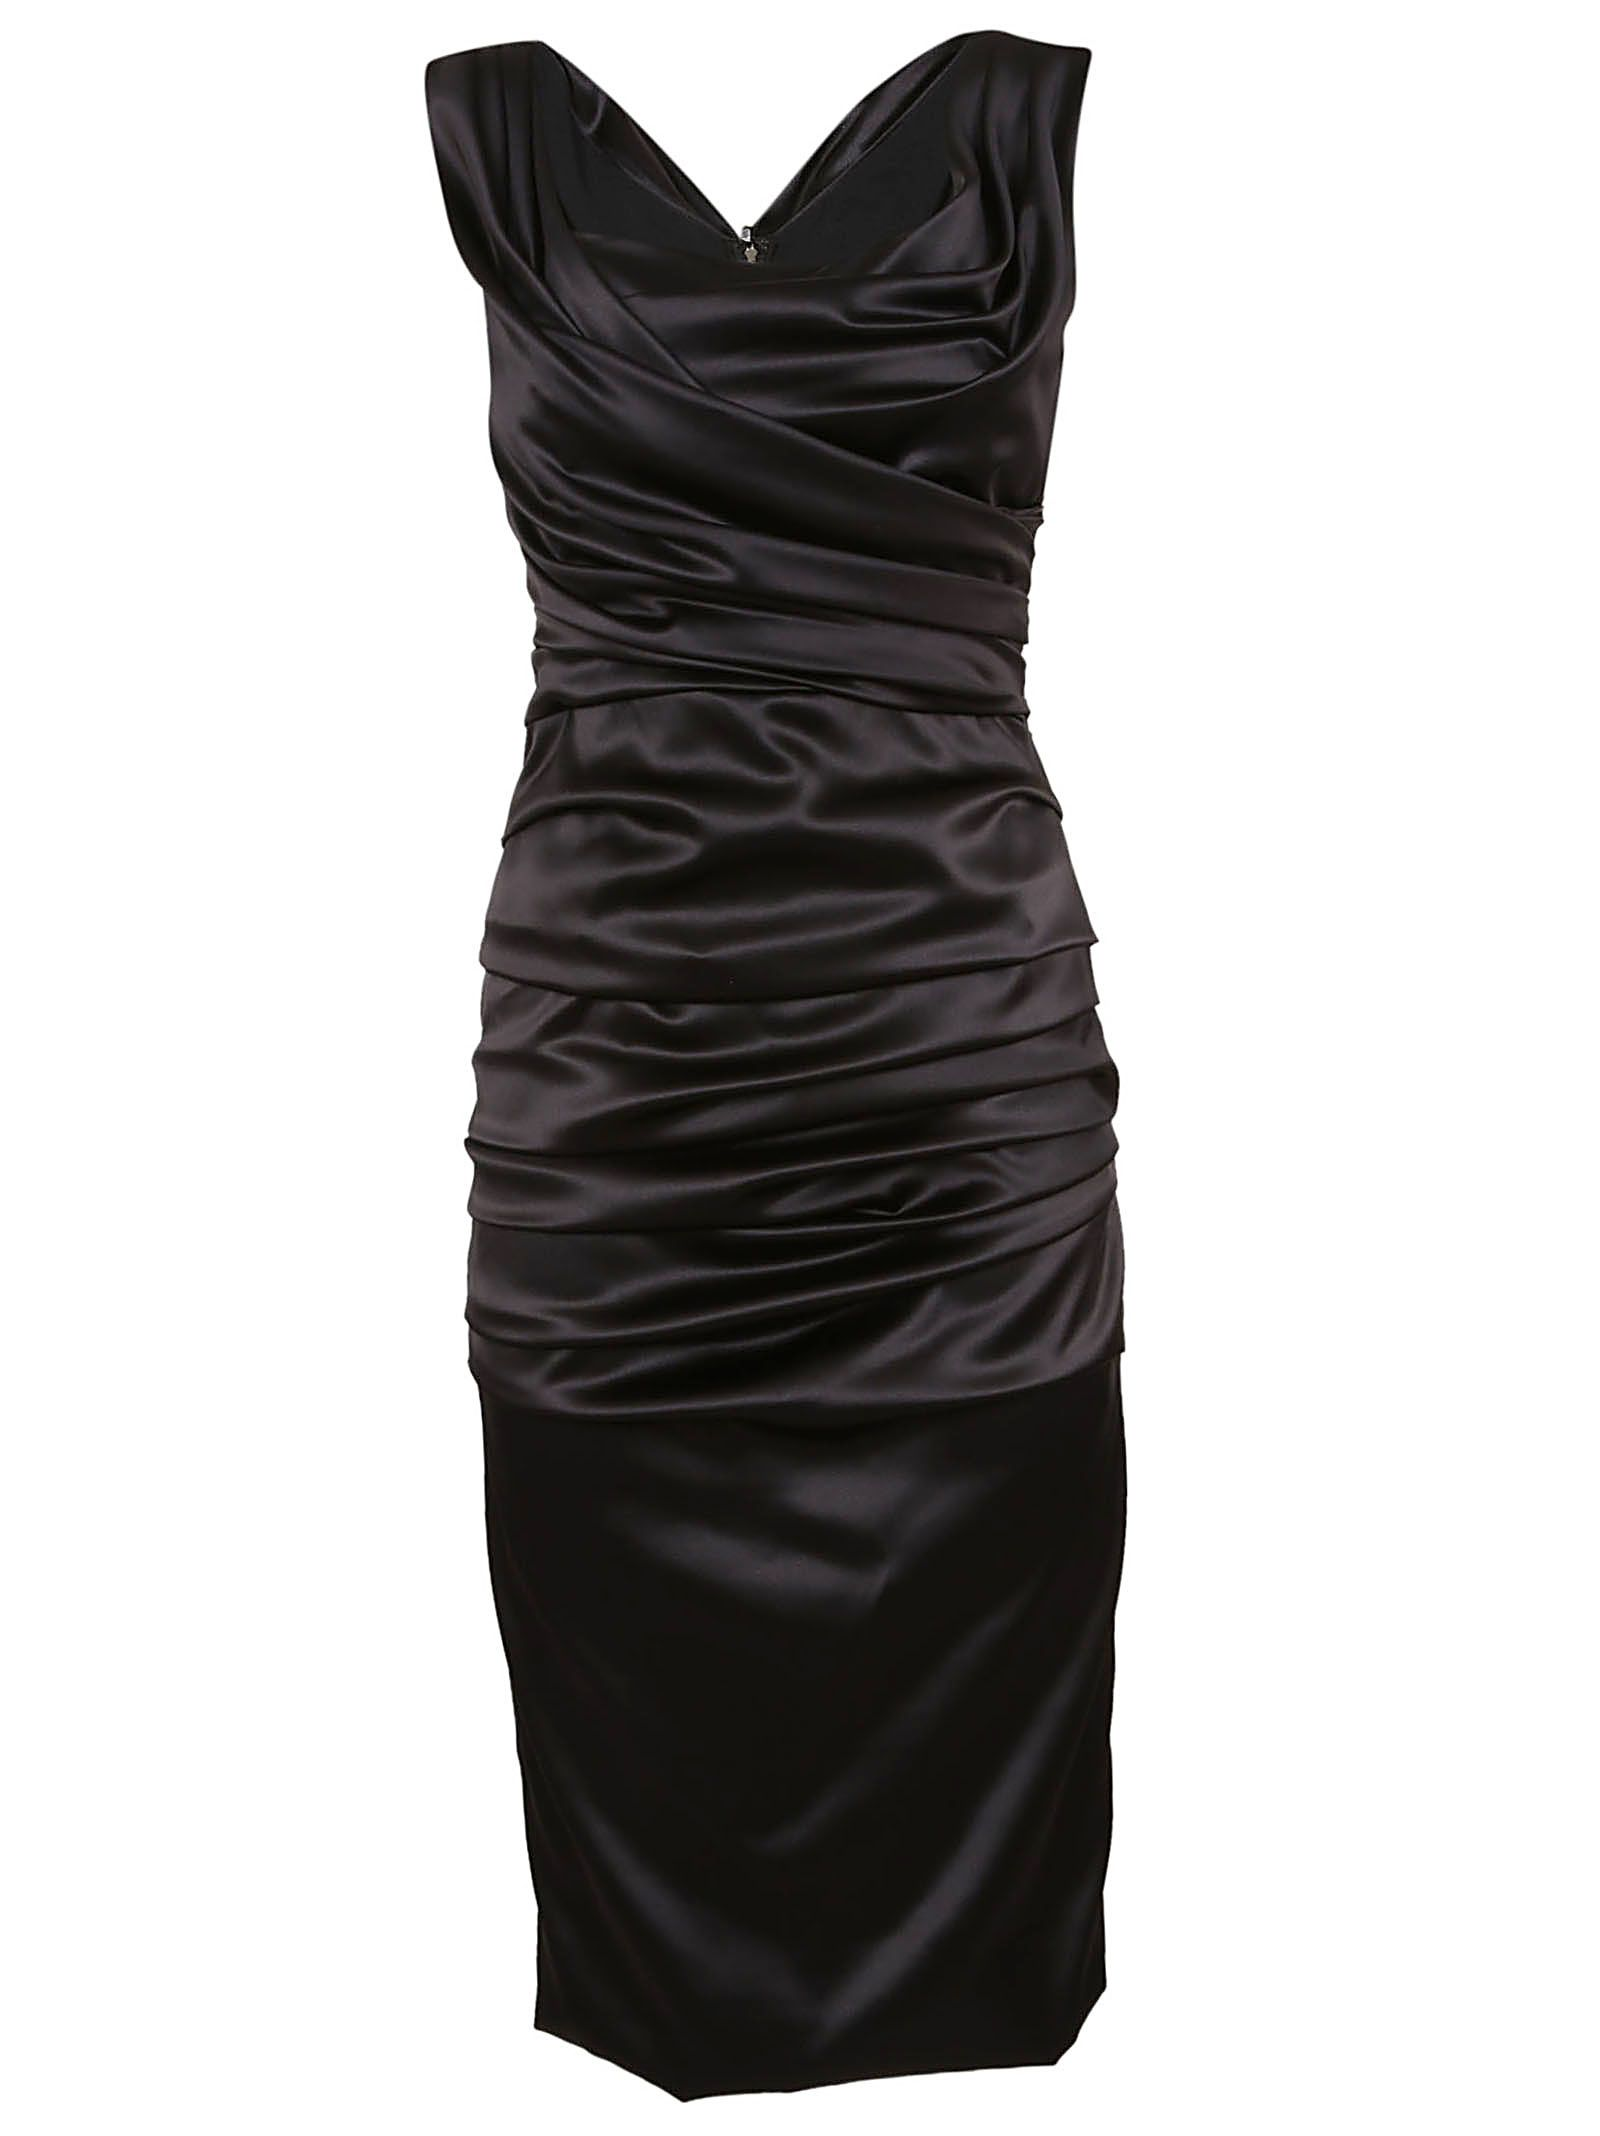 a7c43f0eeba9d0 Dolce   Gabbana Dolce   Gabbana Pencil Dress - BLACK - 10838185 ...